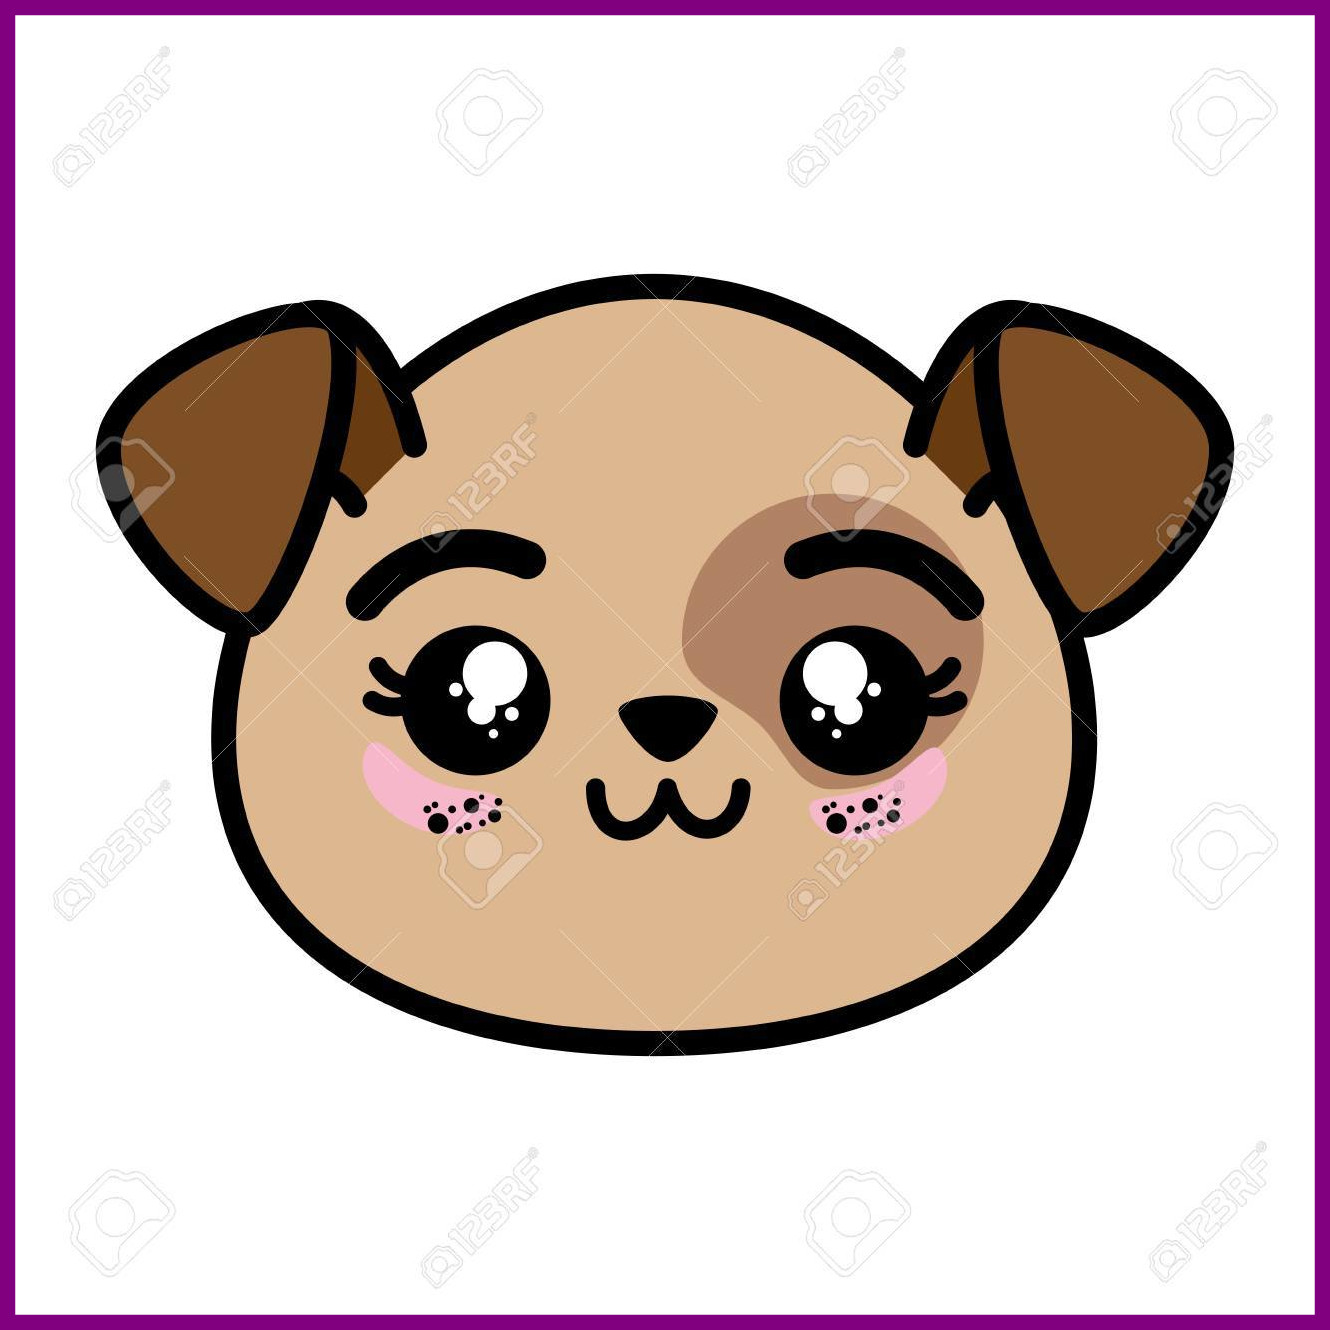 1330x1330 Fascinating Puppy Dog Clip Art Pinteres Clipartix Picture For Cute